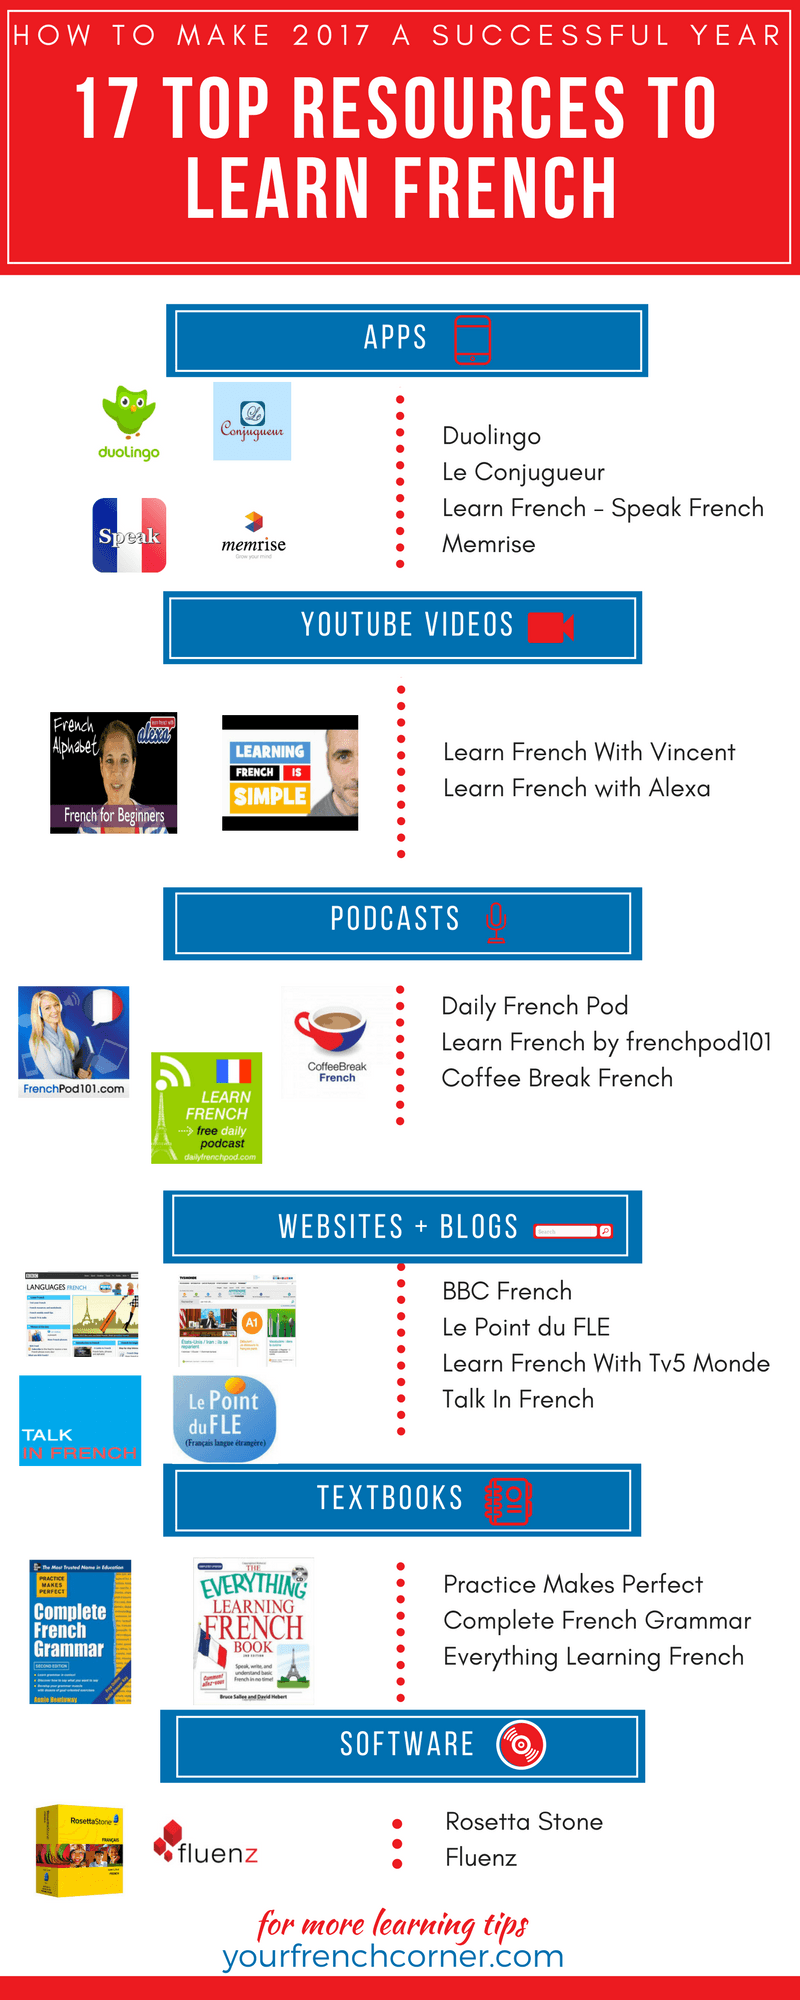 How to make 2017 a successful year 17 top resources to help you 17 top resources to learn french get your free guide and bonus tips learnfrench fle frenchimmersion fandeluxe Gallery